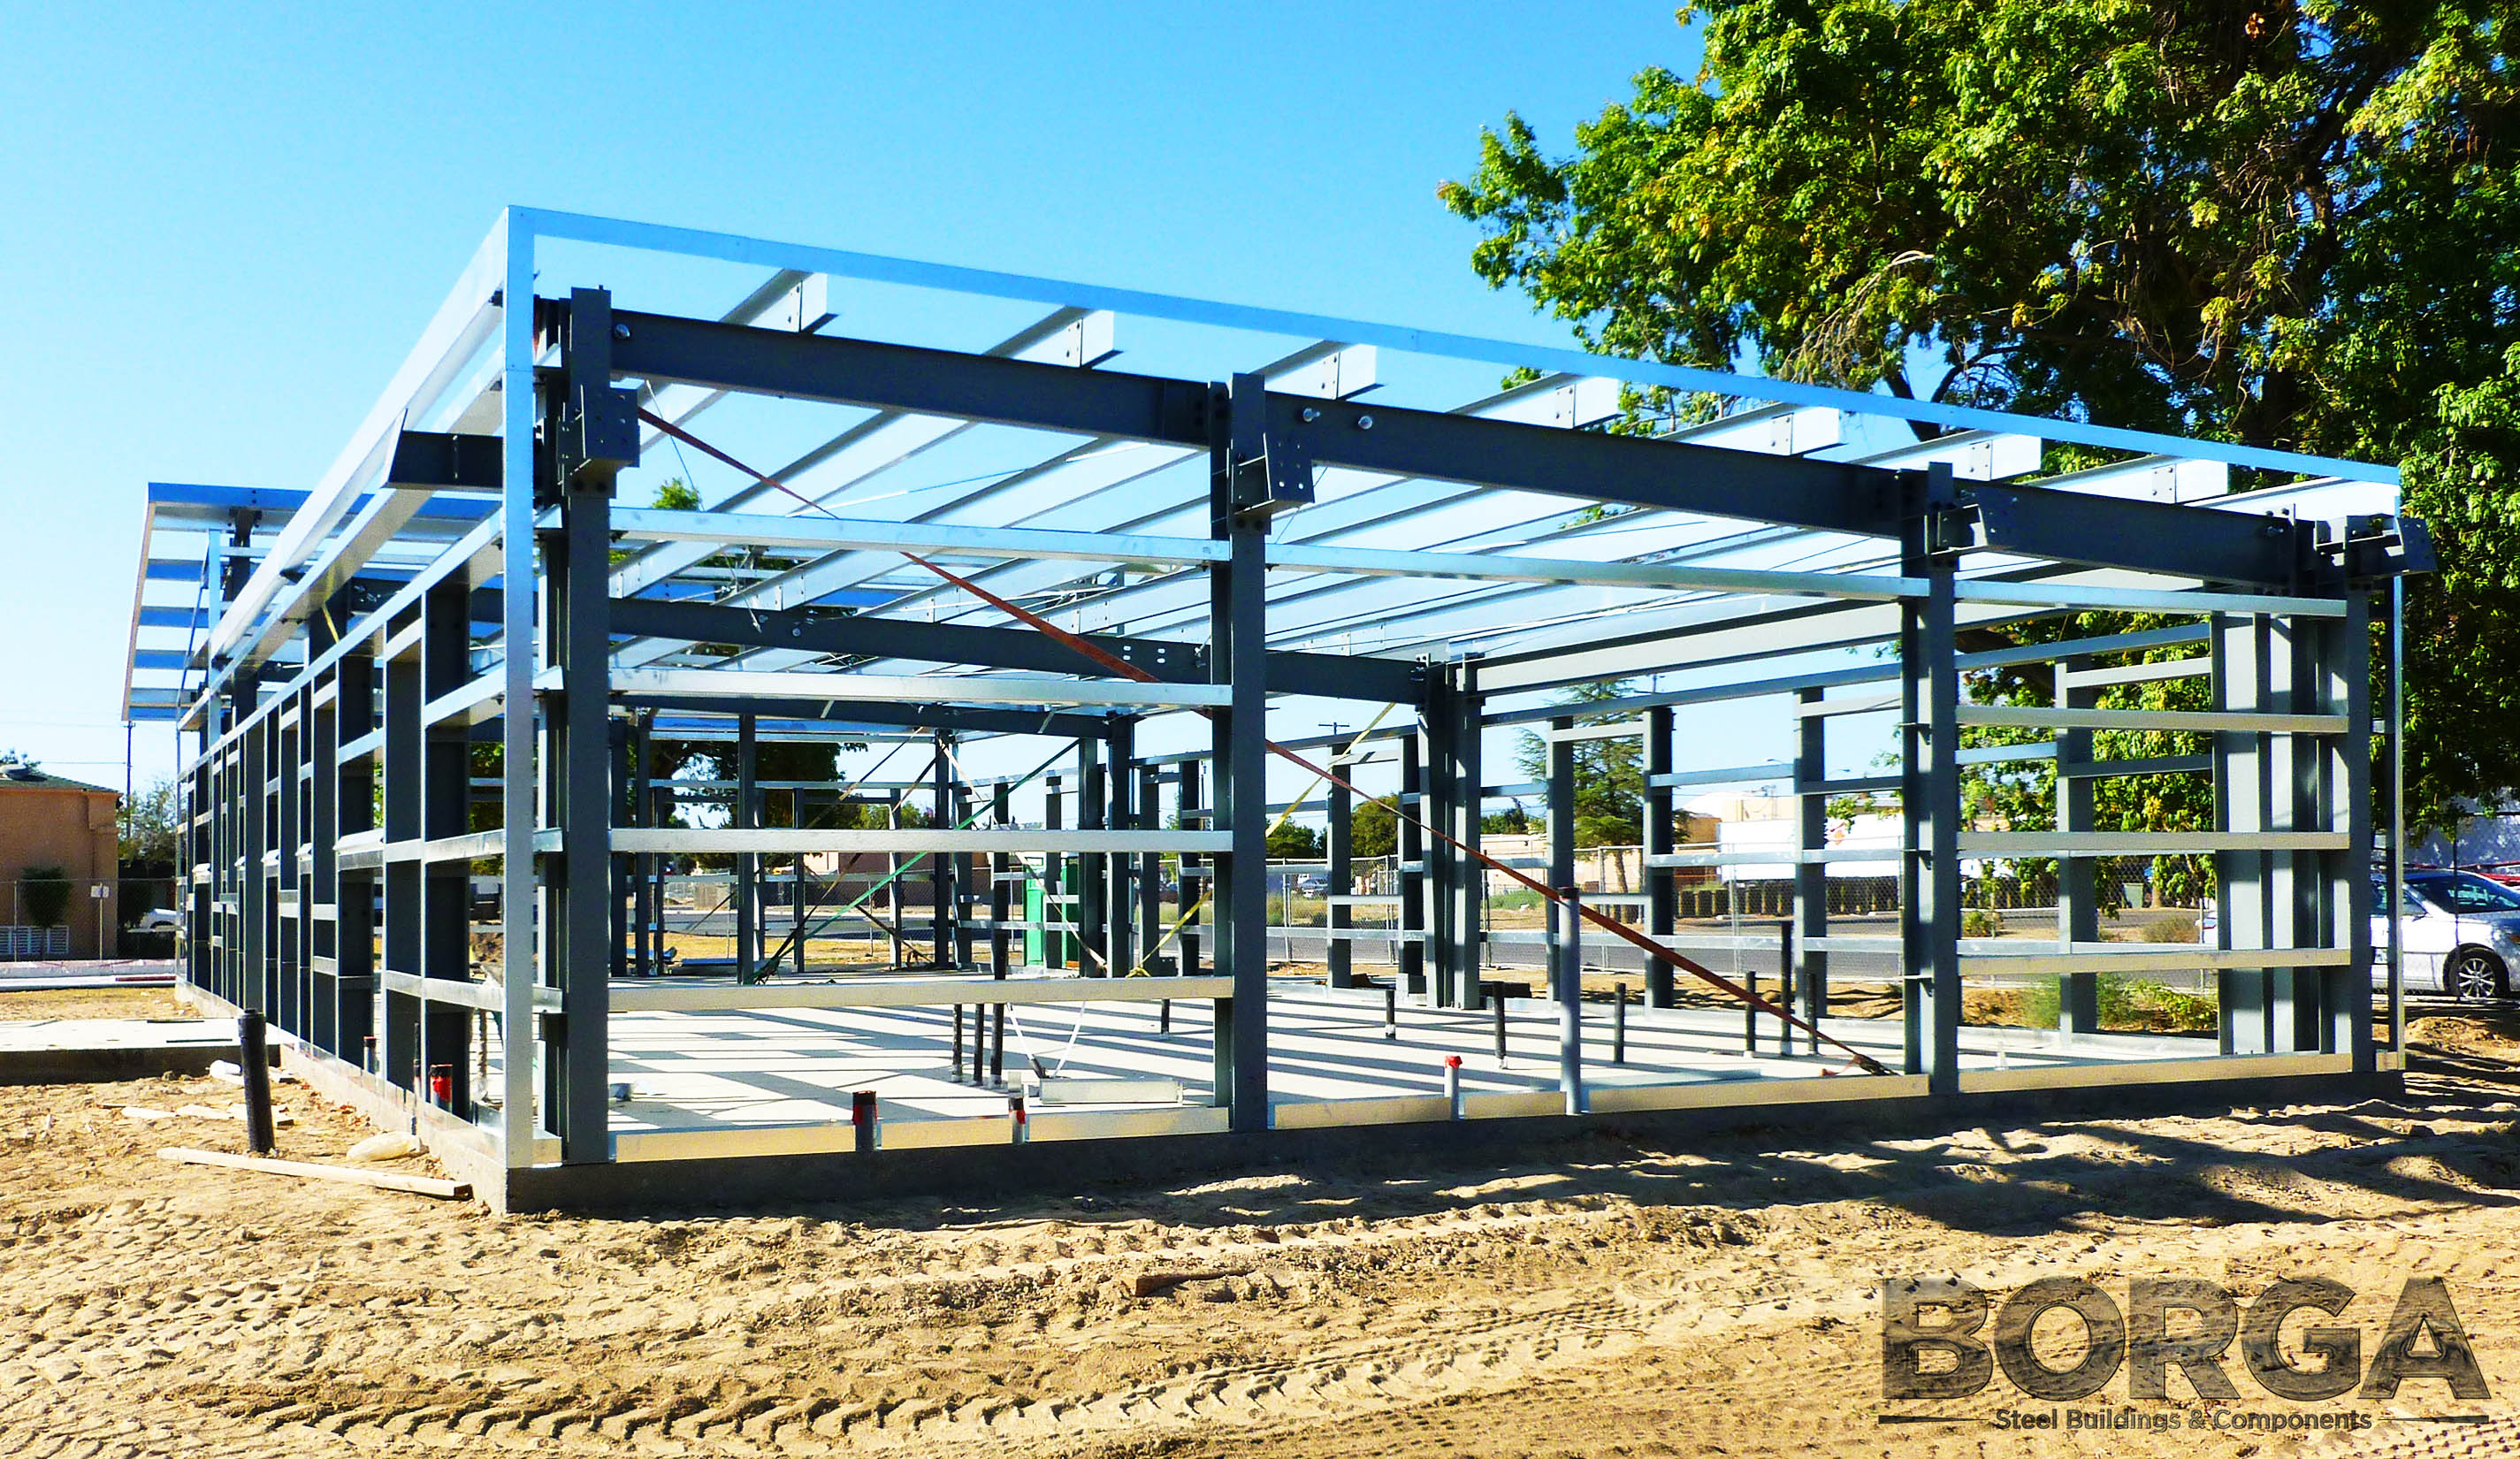 Borga Steel Buildings Components Metal Framing Huron Boys & Girls Club 7